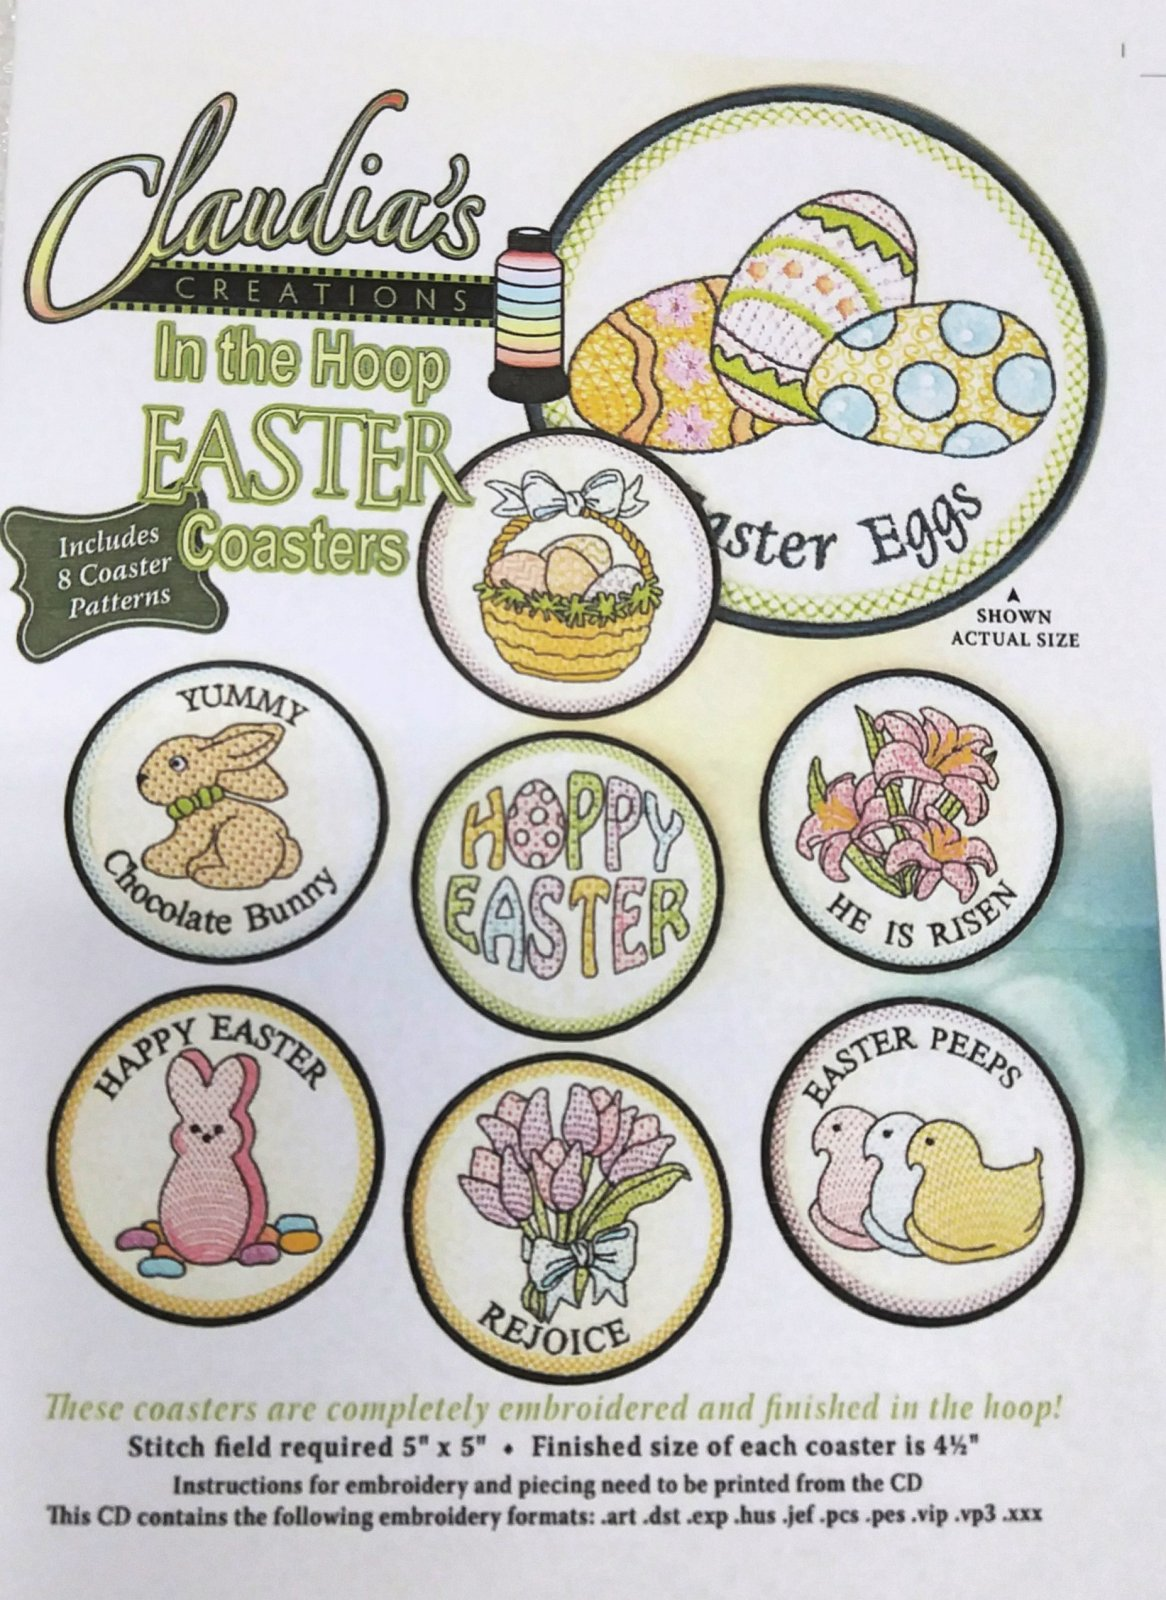 CLAUDIA'S CREATIONS EASTER COASTERS